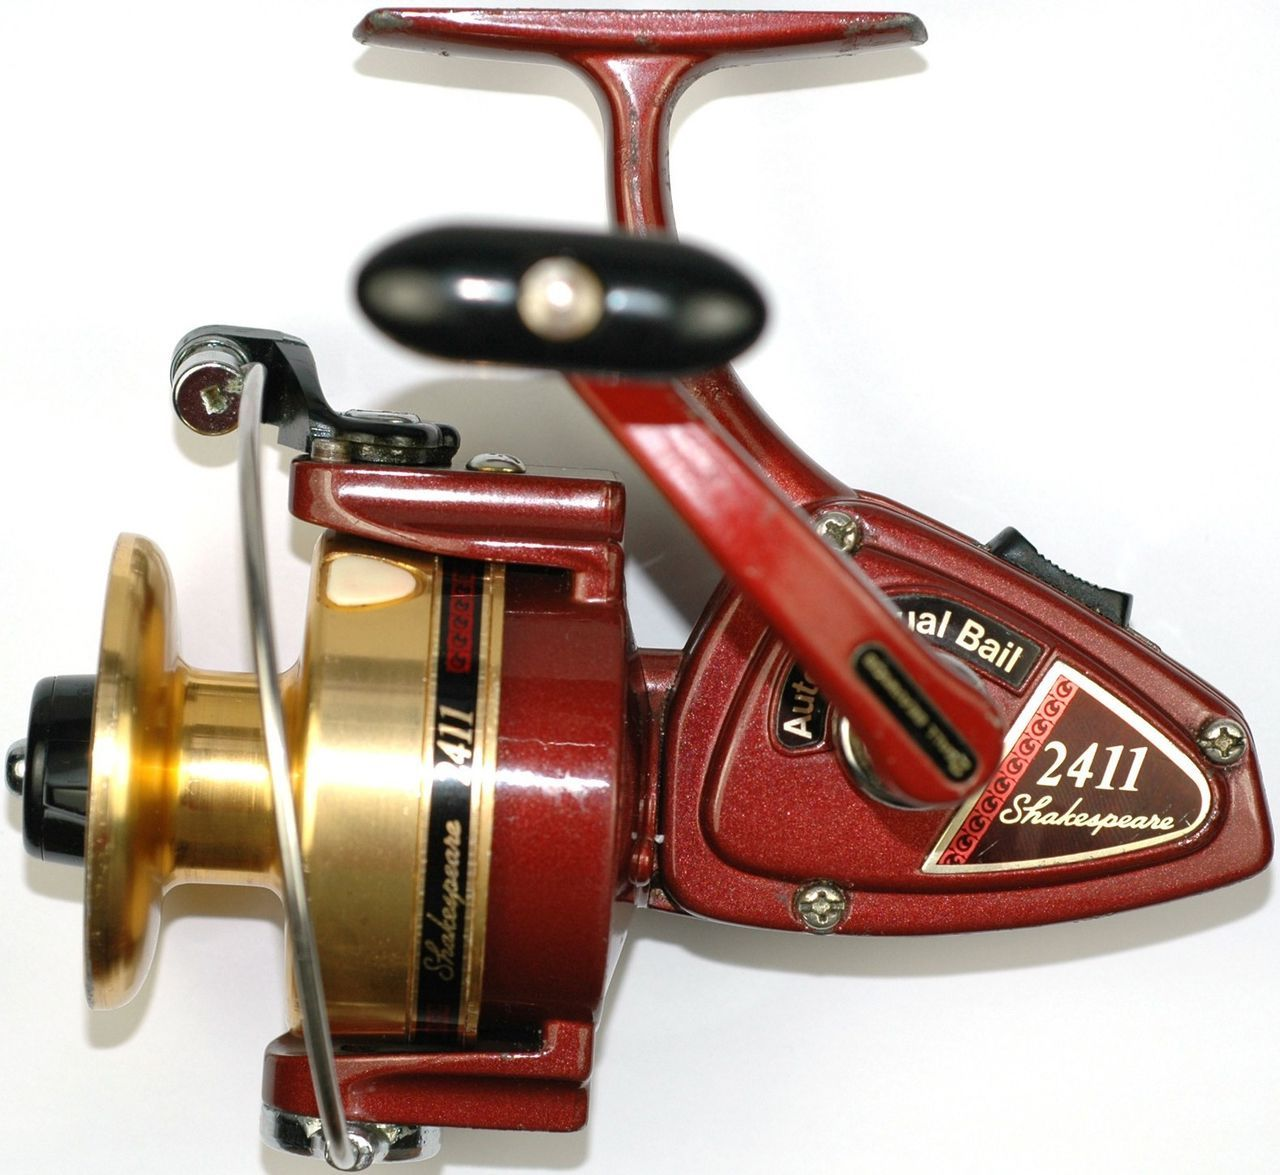 Ready to fish vintage shakespeare model 2411 spinning reel for Shakespeare fishing reels